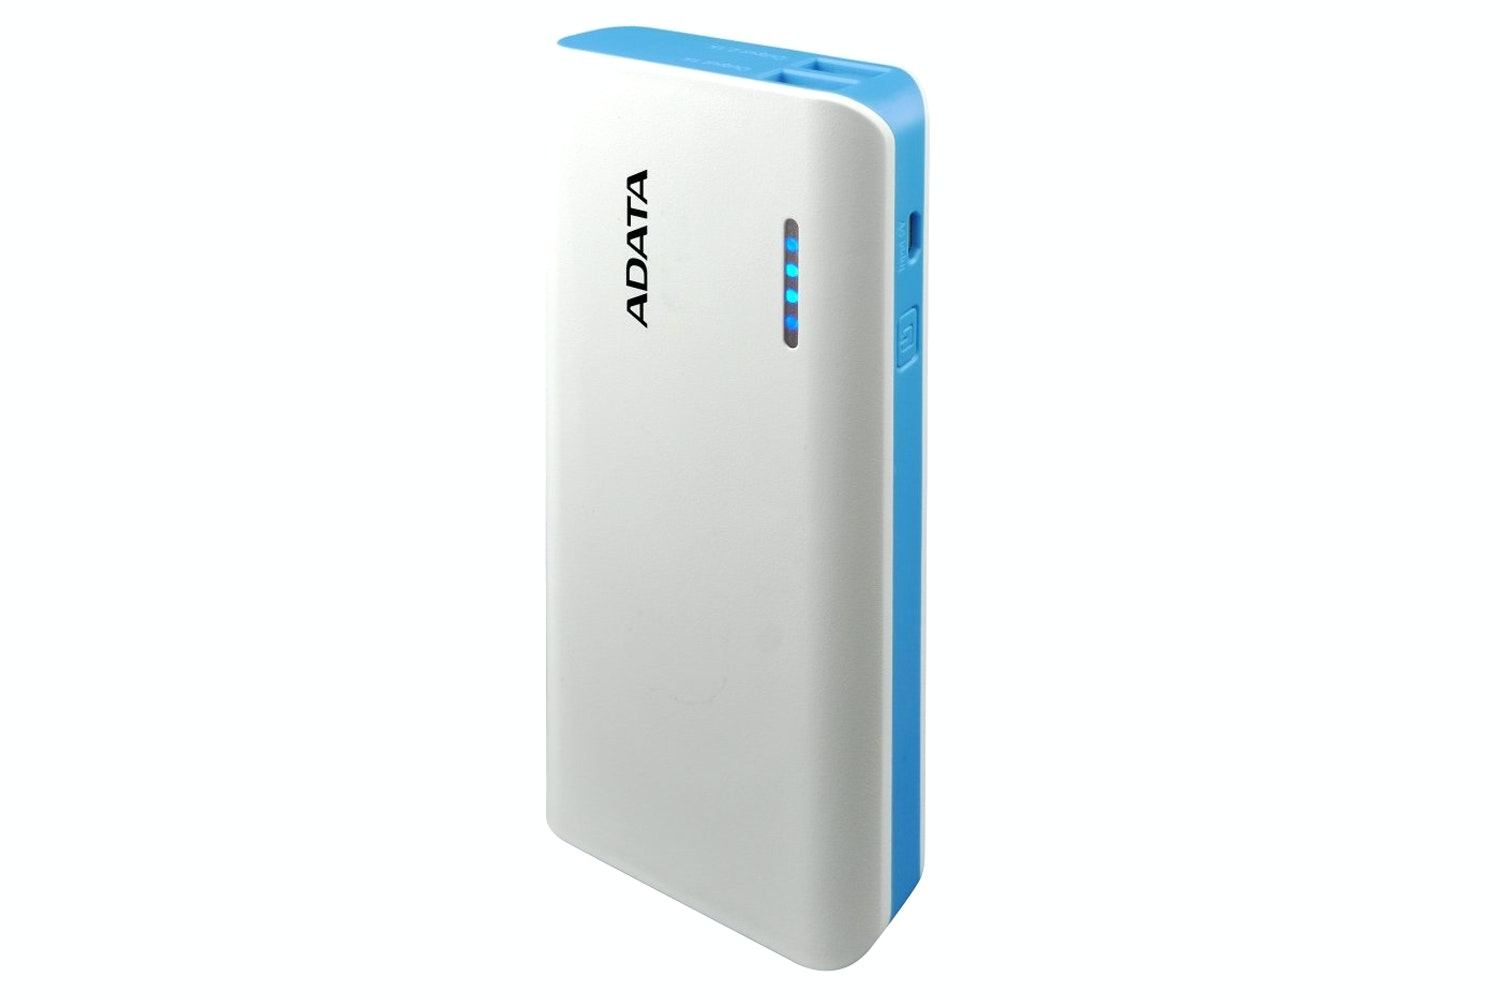 ADATA PT100 Power Bank | White/Blue